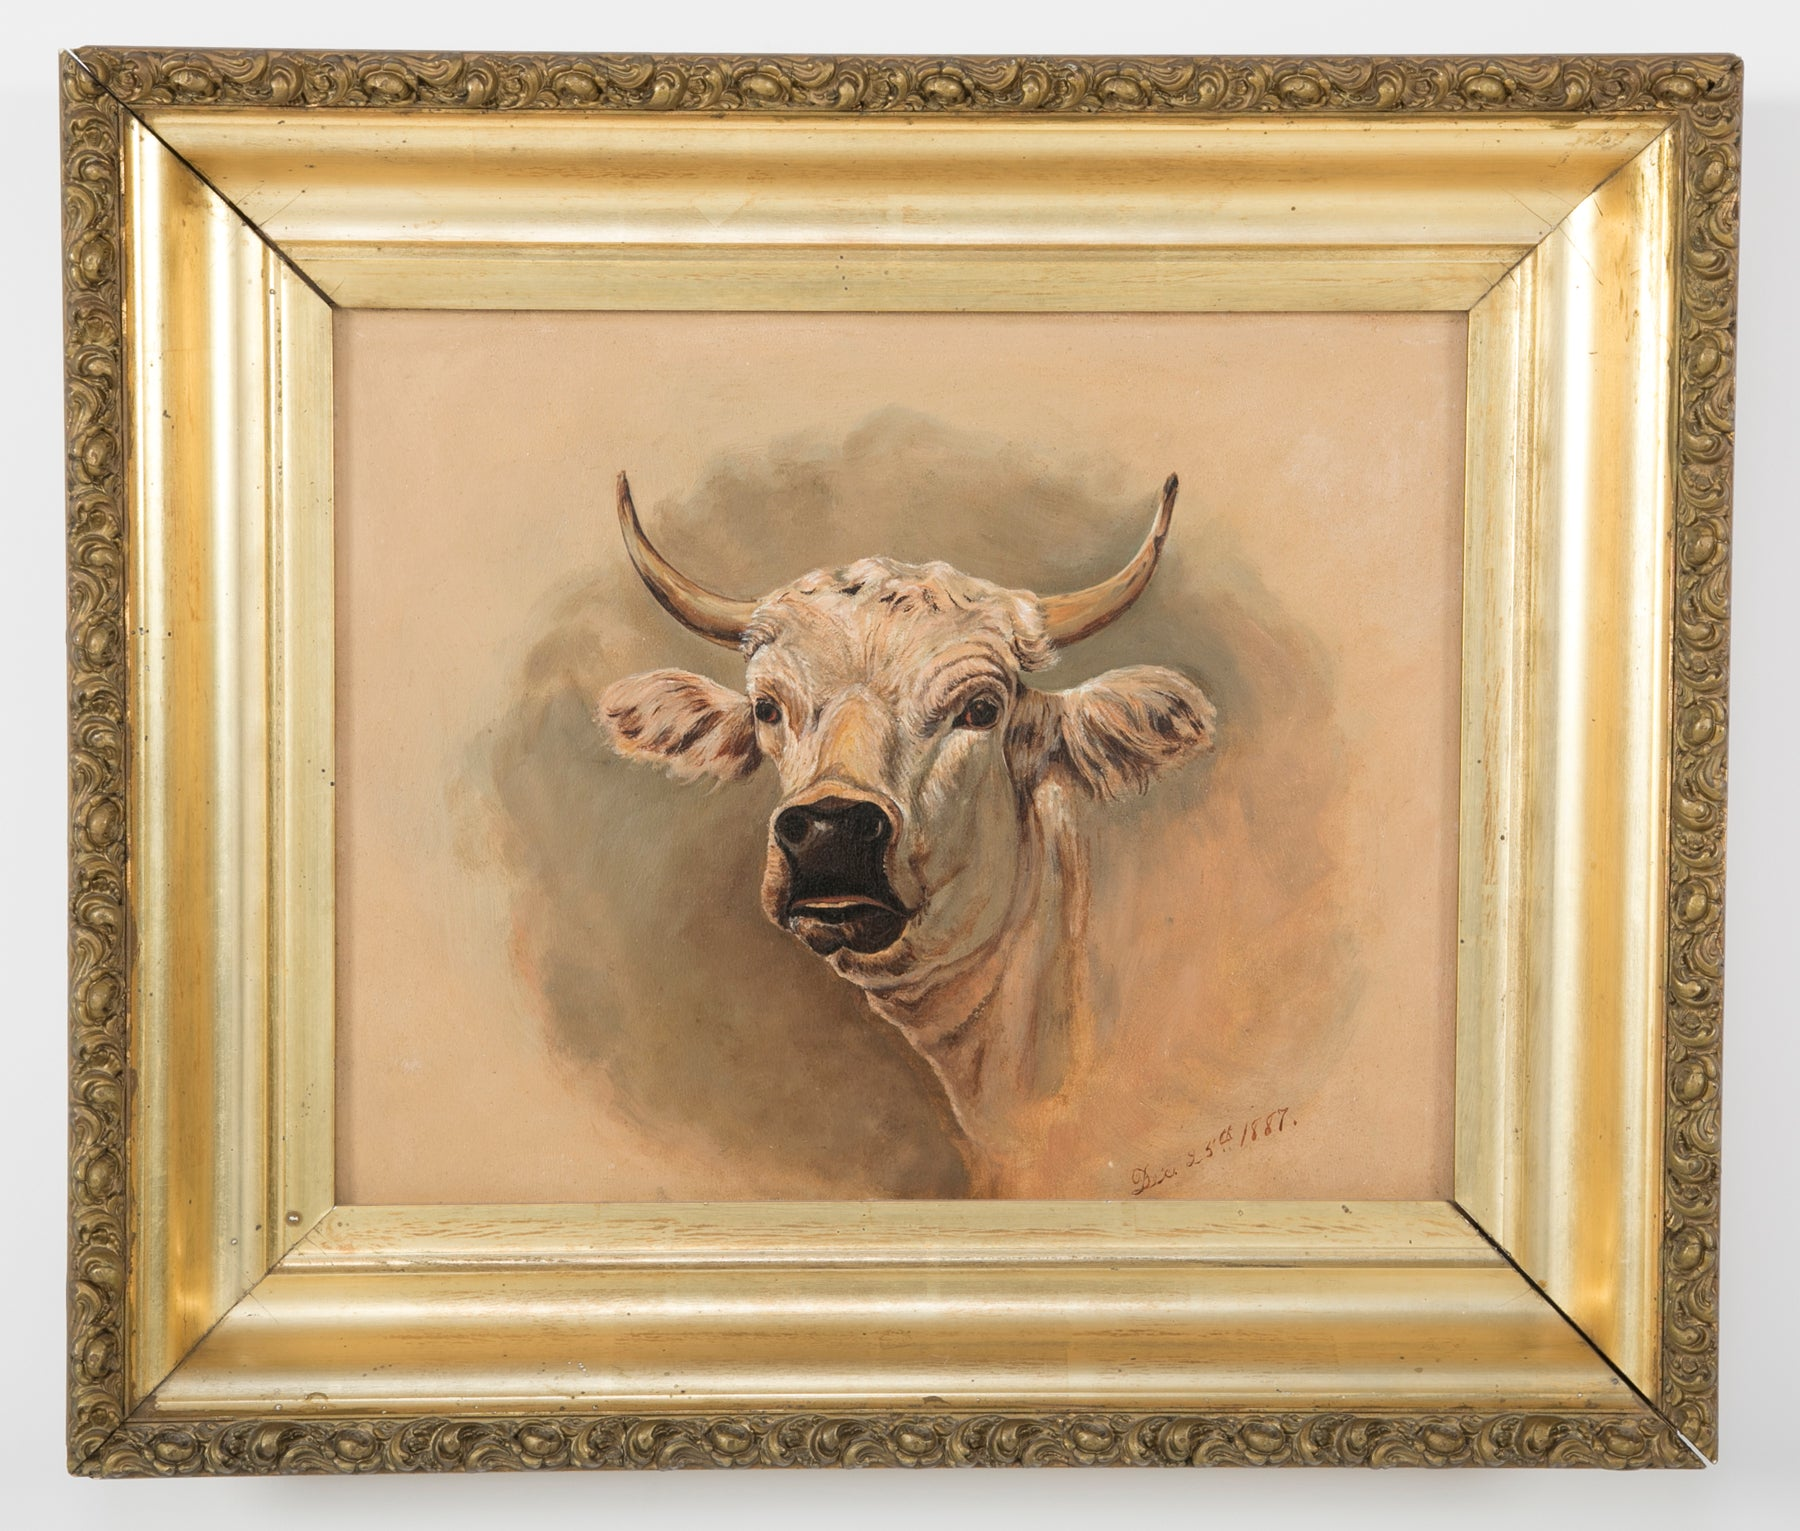 Oil on Board of a Prize Bull